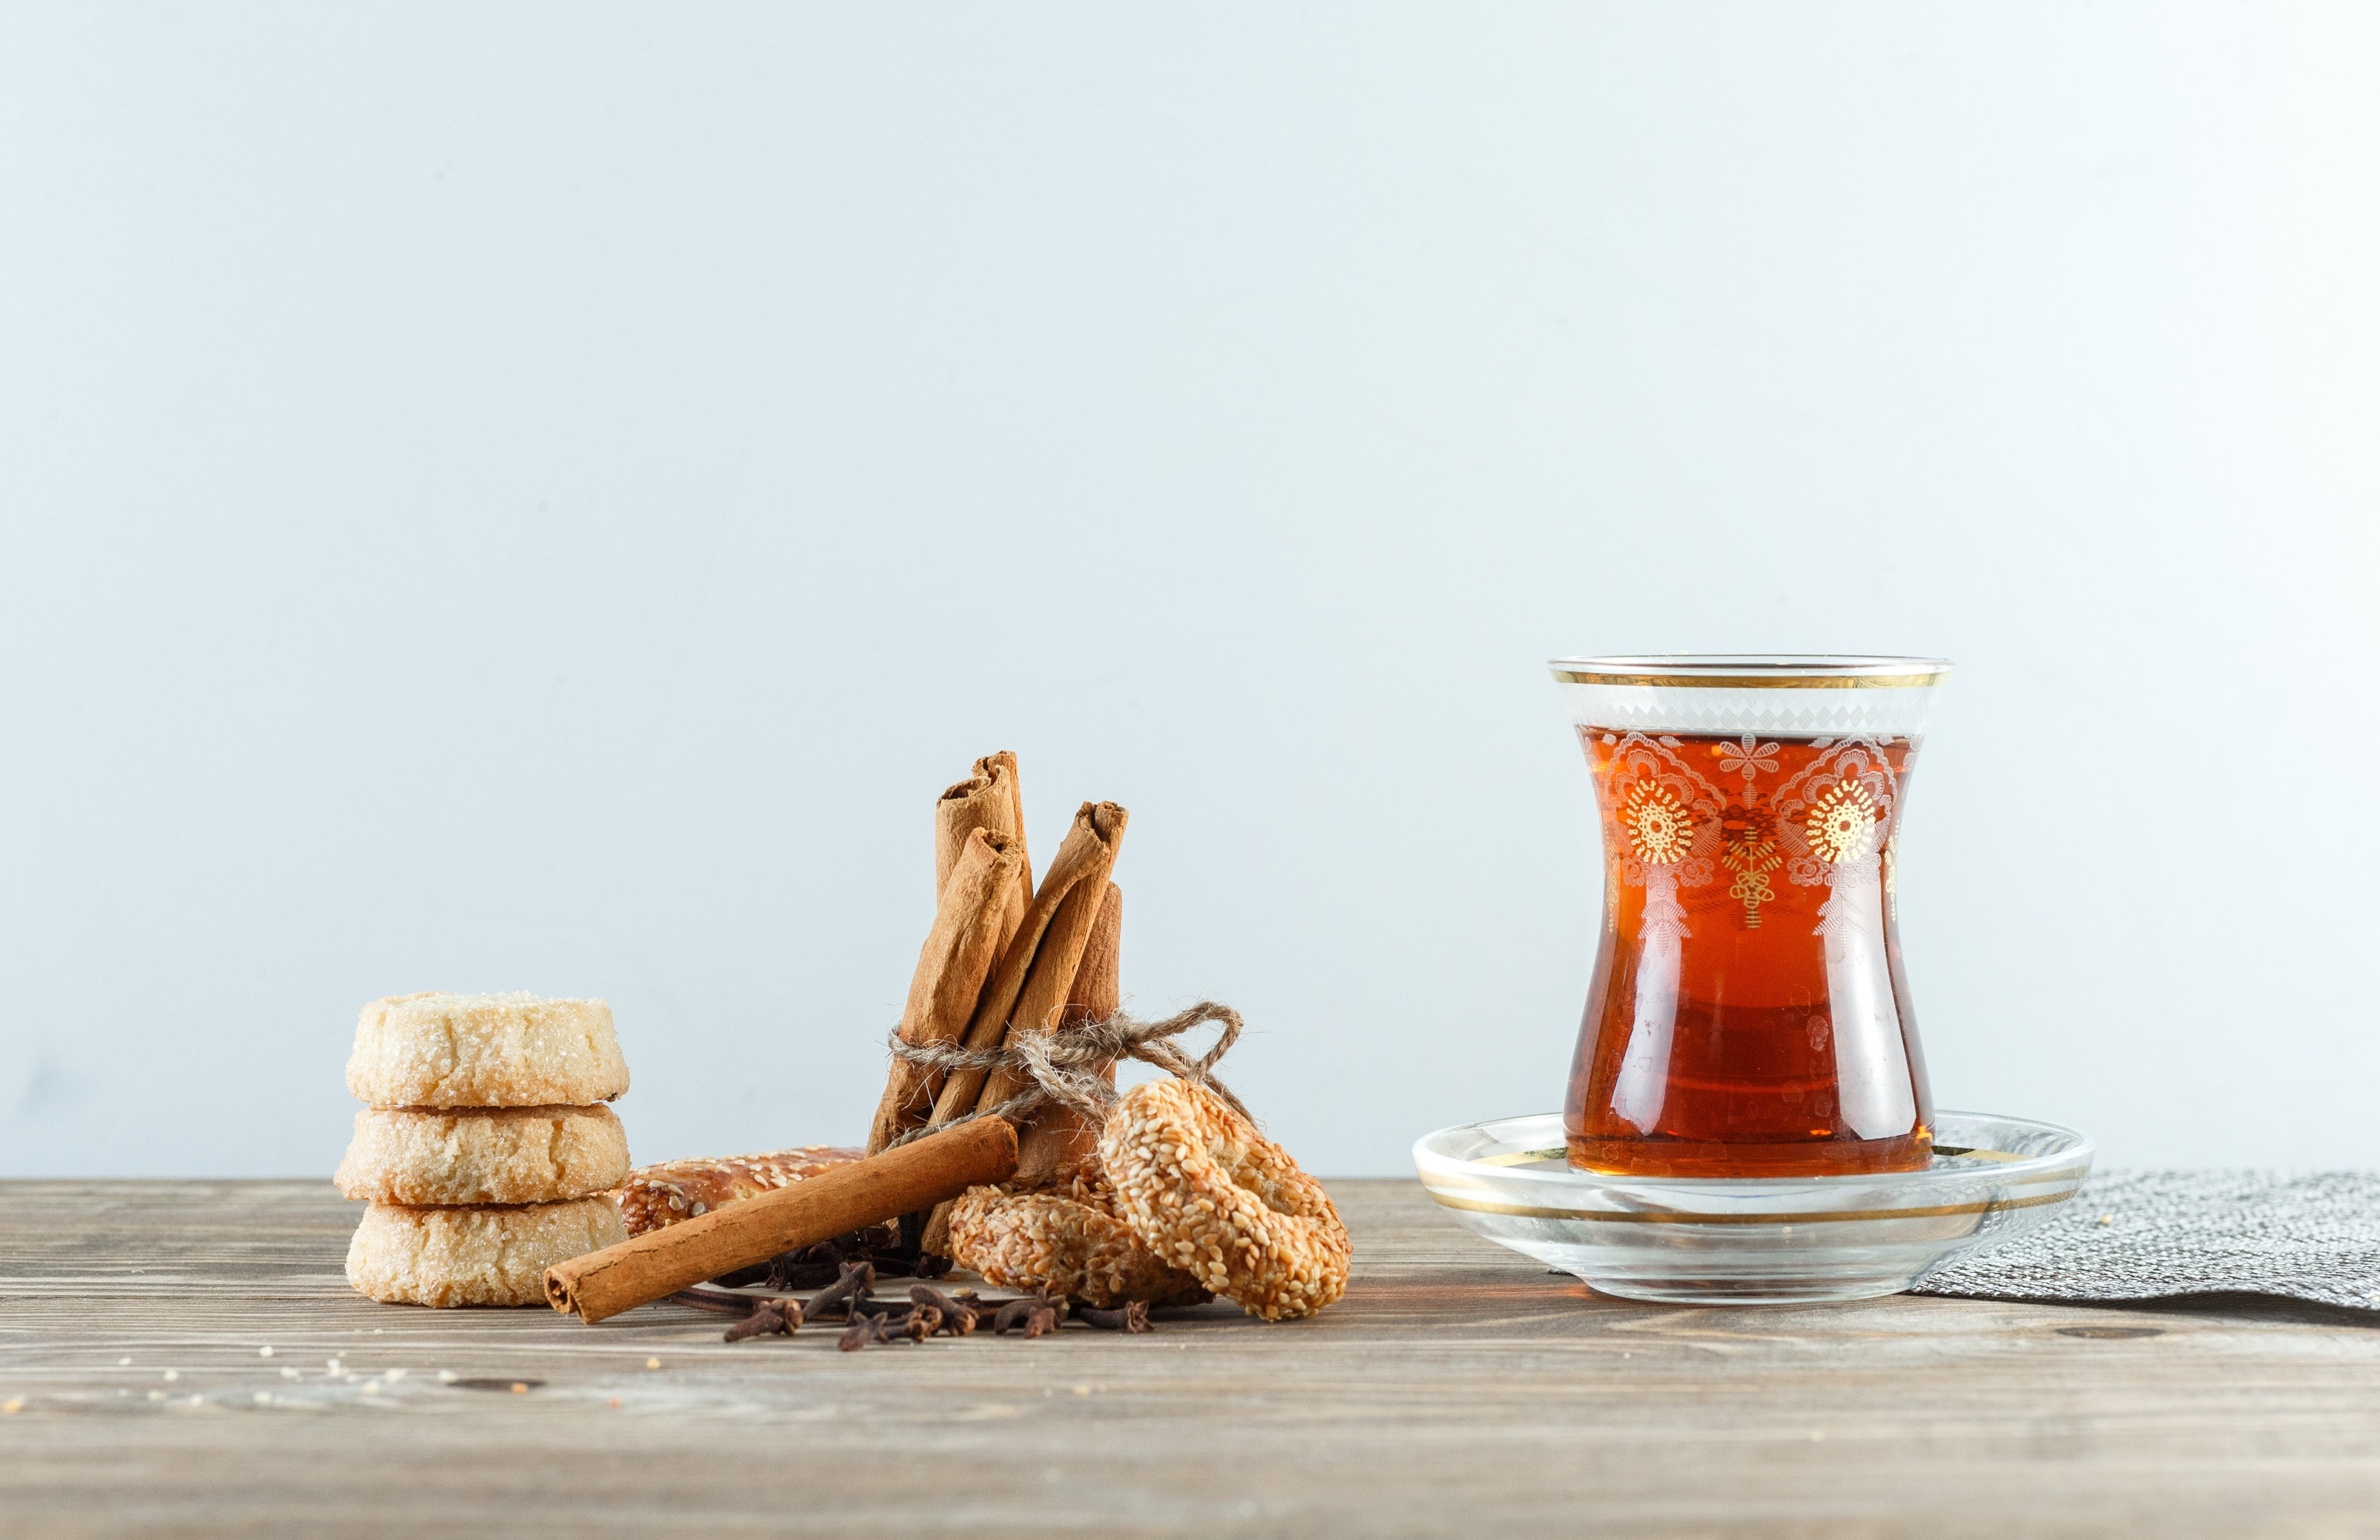 Glass of tea with cloves and biscuits